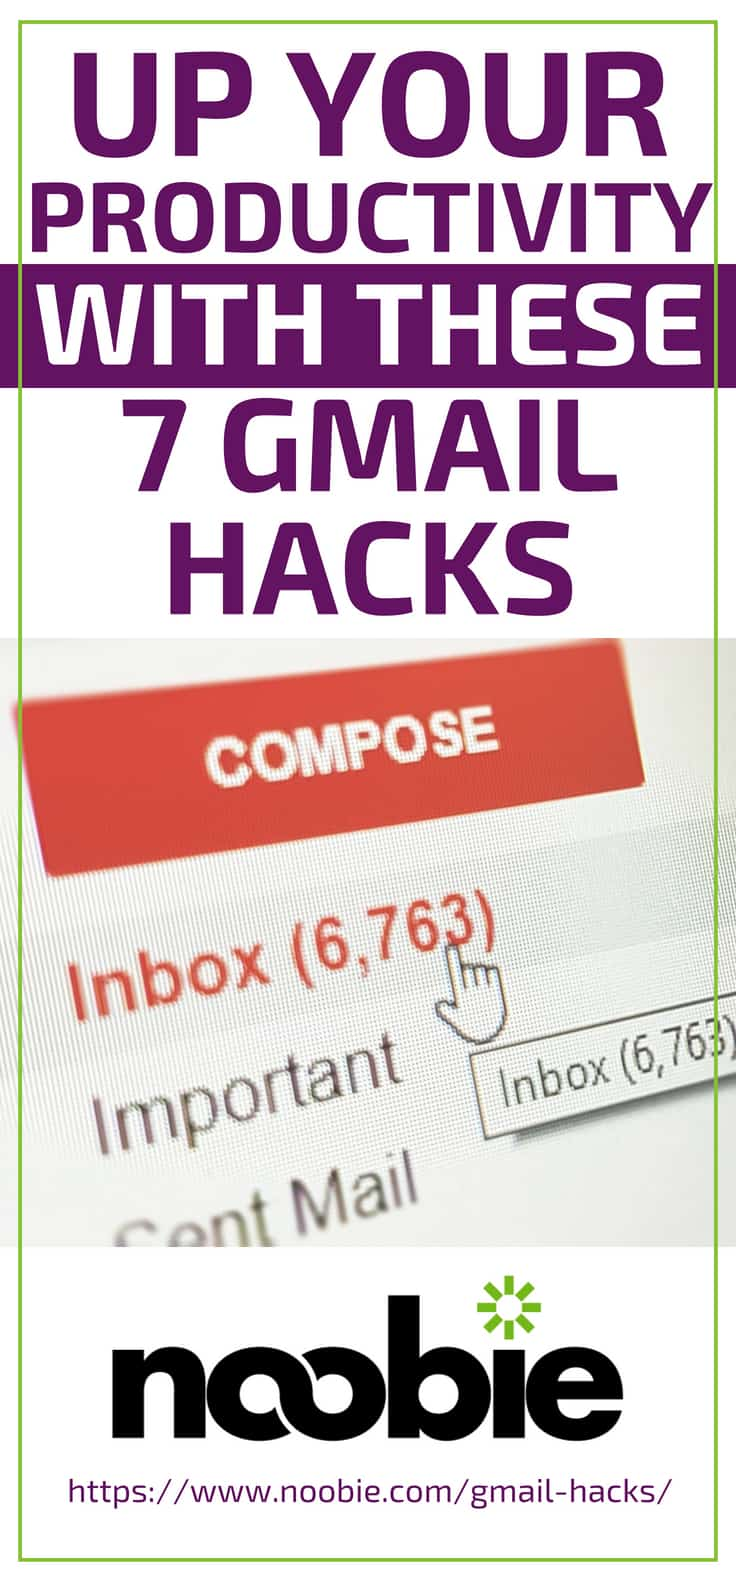 Up Your Productivity With These 7 Gmail Hacks